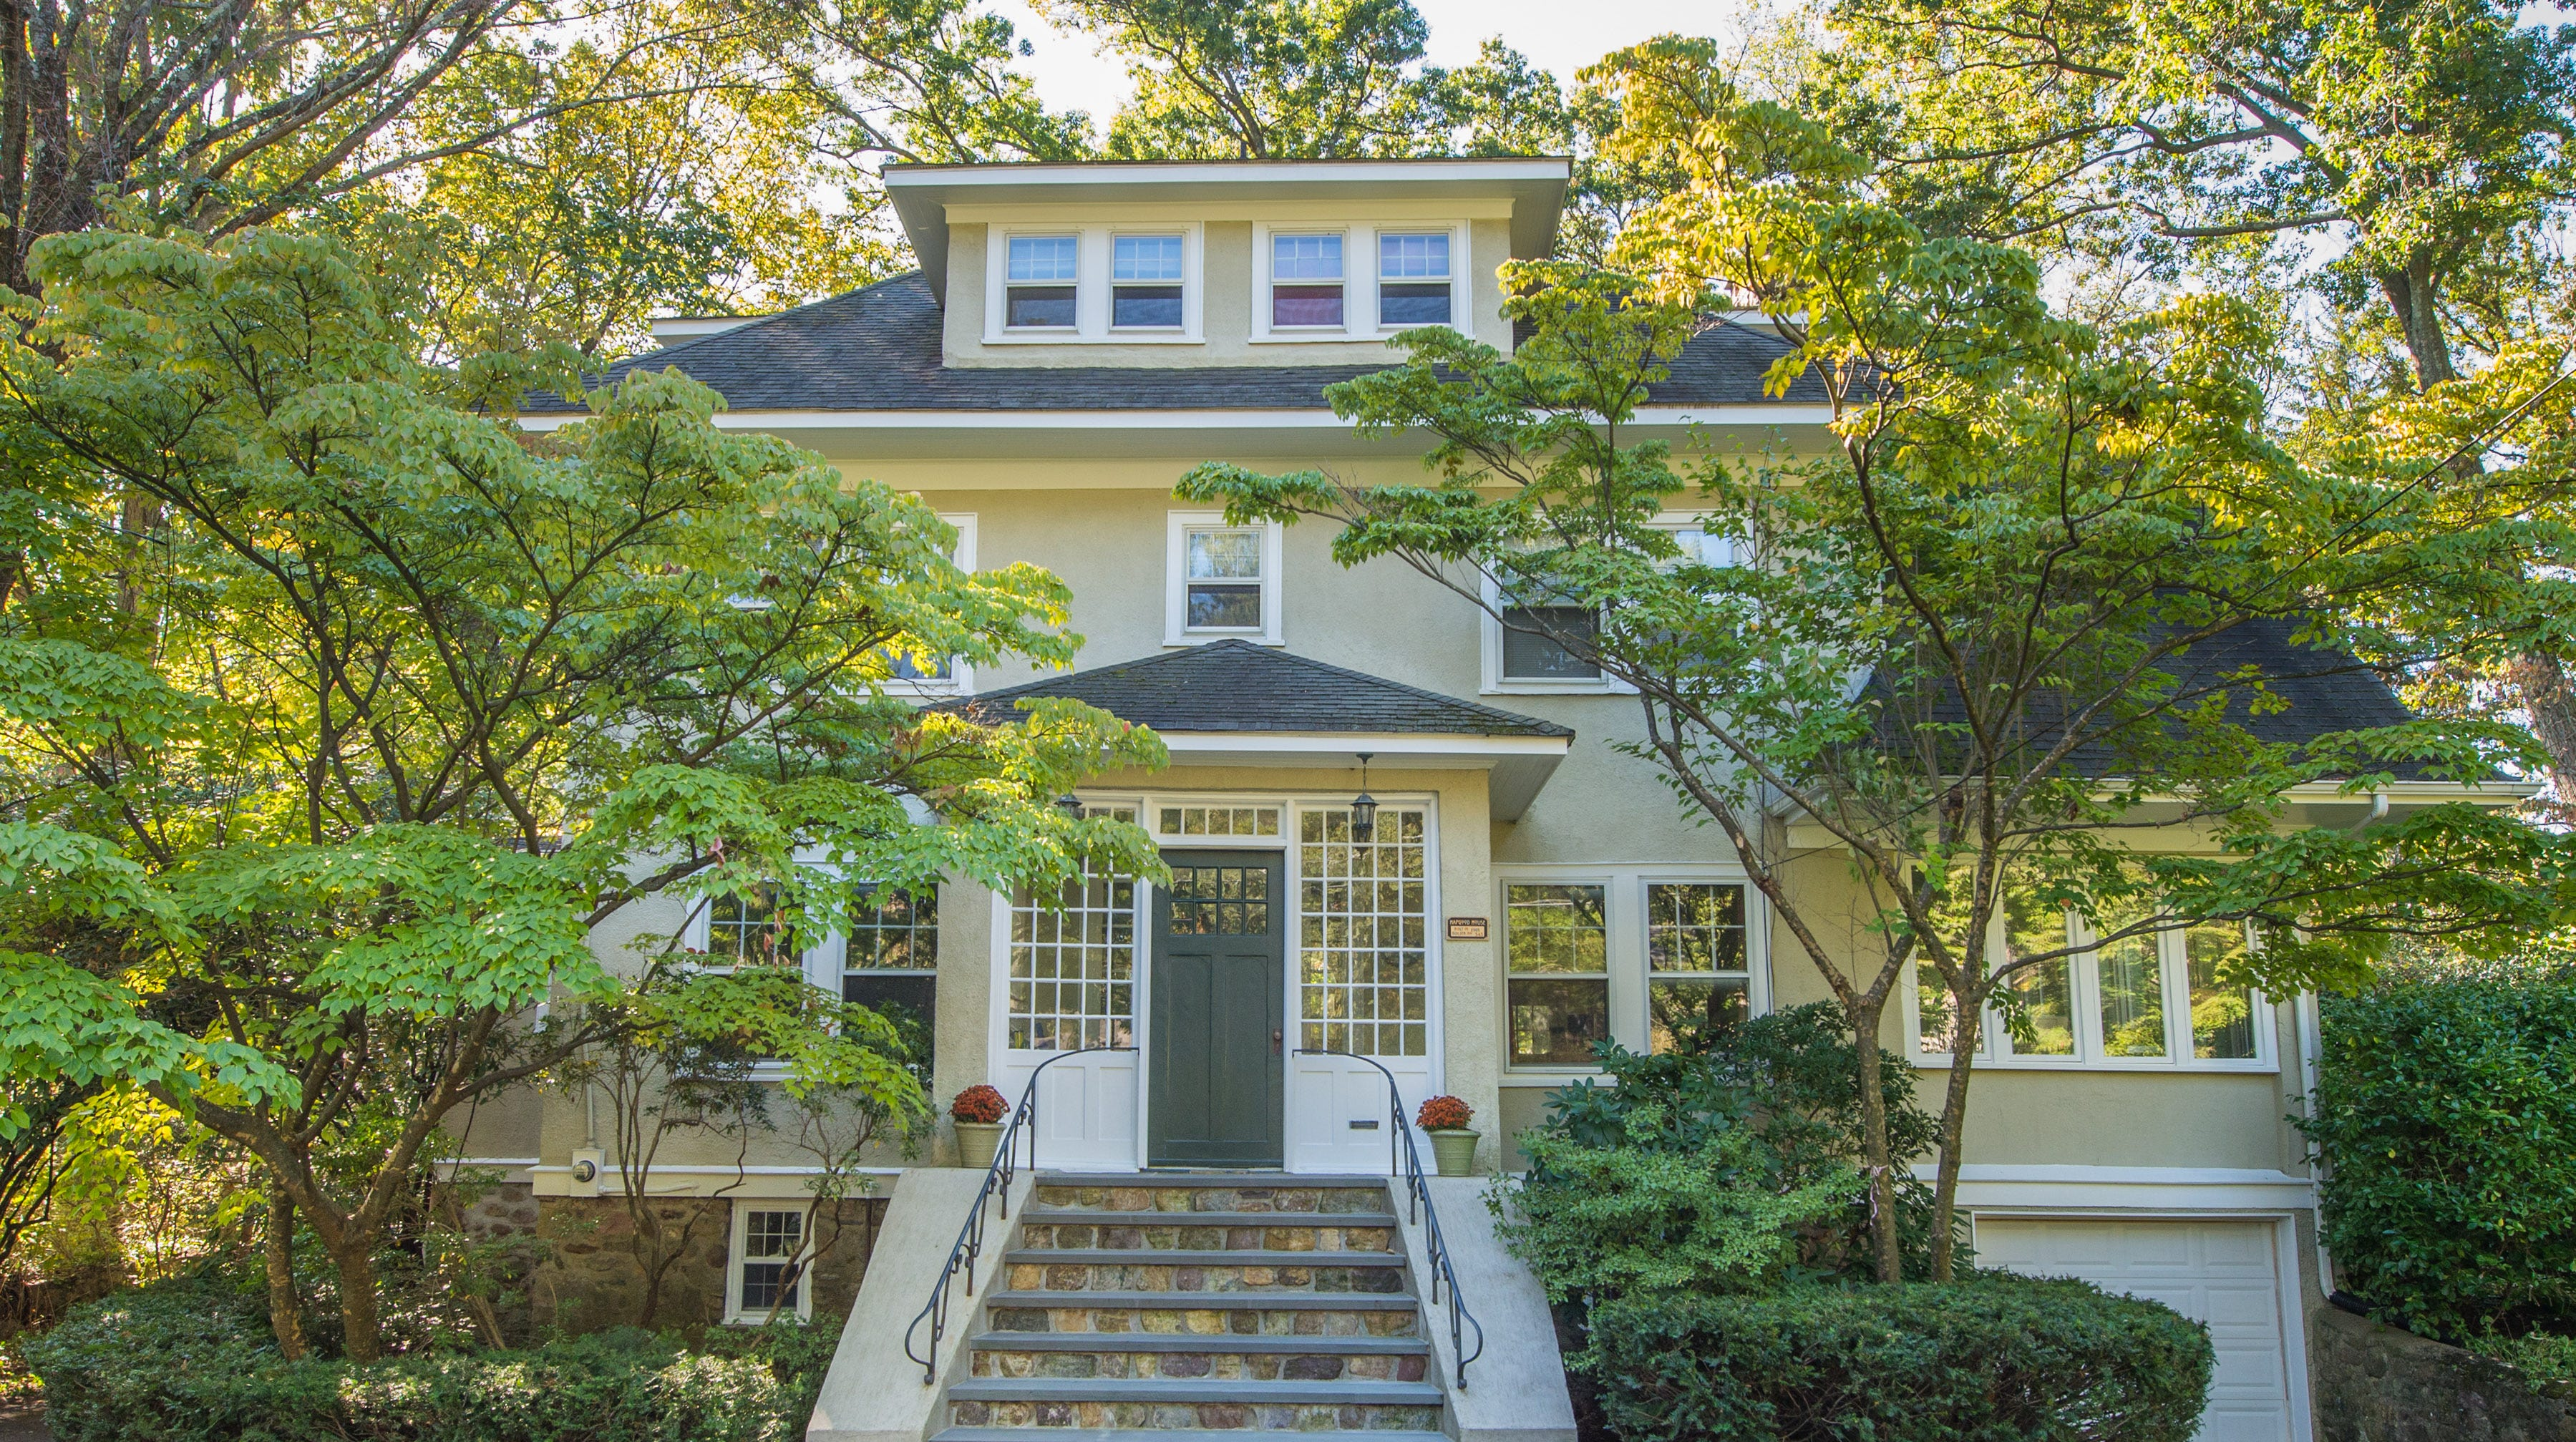 380 Morris Ave. in Mountain Lakes is a five-bedroom home originally designed by Herbert J. Hapgood. It will be open to the pubic from 1 to 3 p.m. on Sunday, Nov. 18.